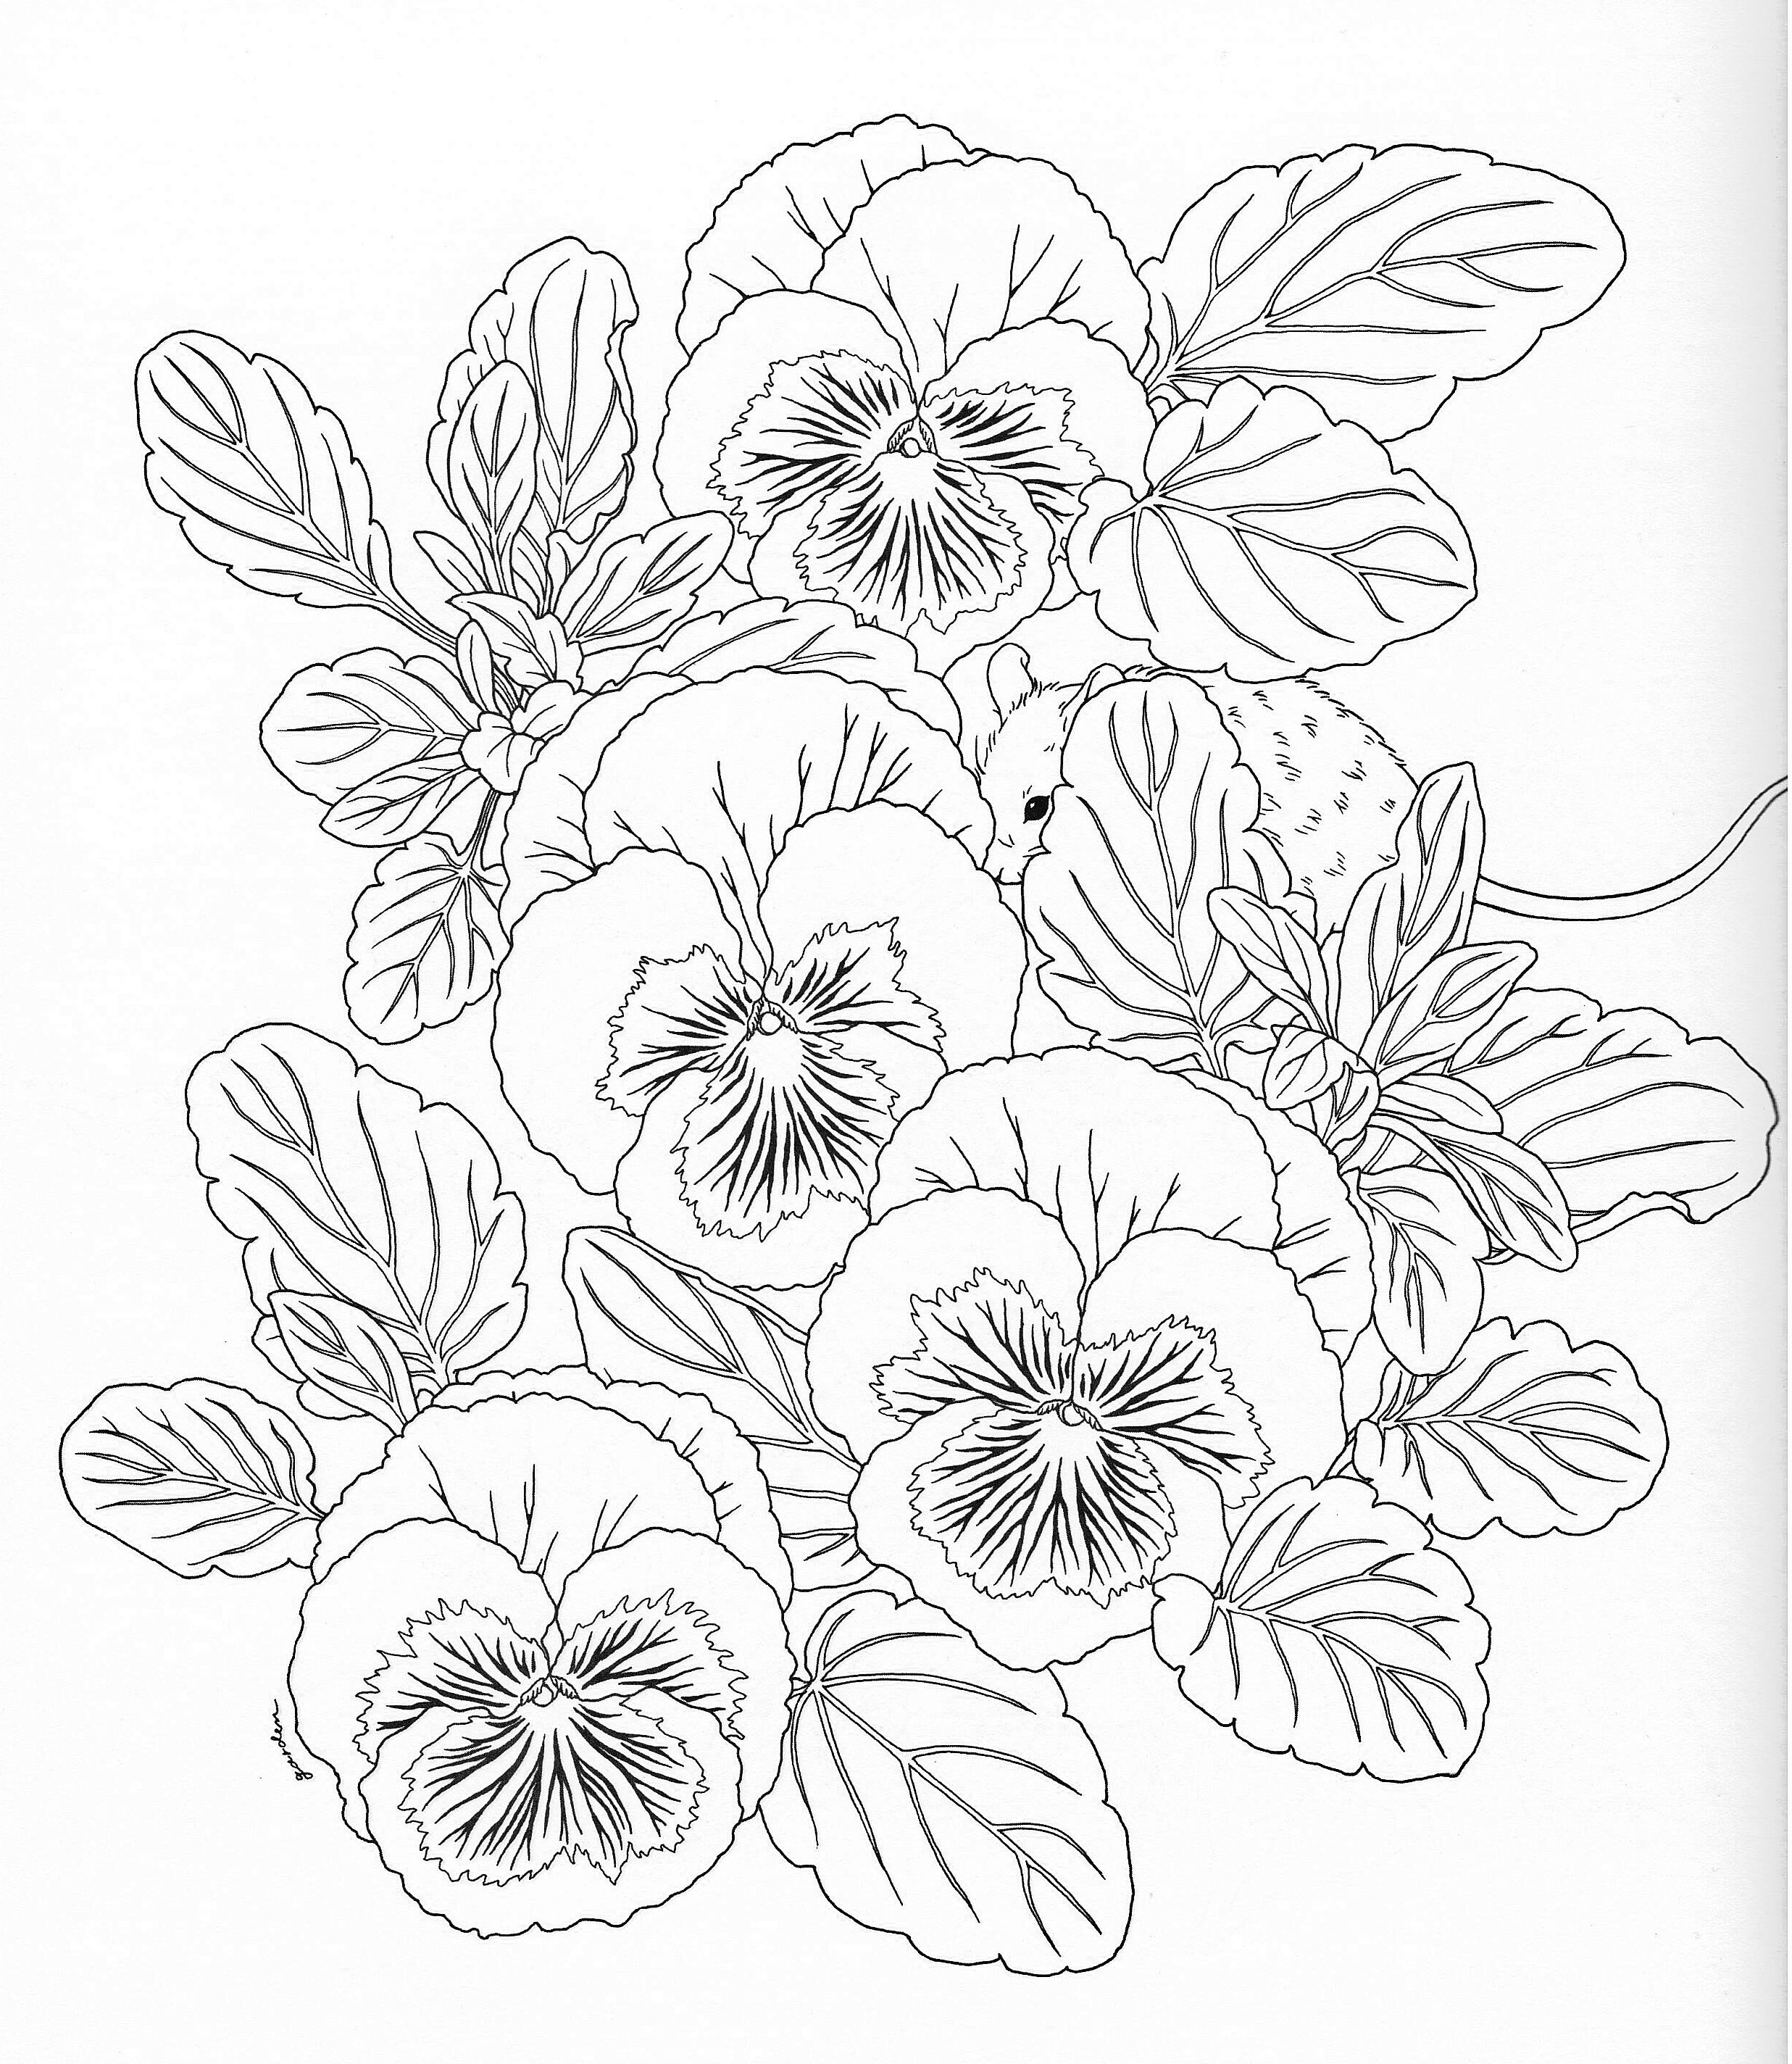 Harmony Of Nature Adult Coloring book Pg 11   Color pages, Stencils ...